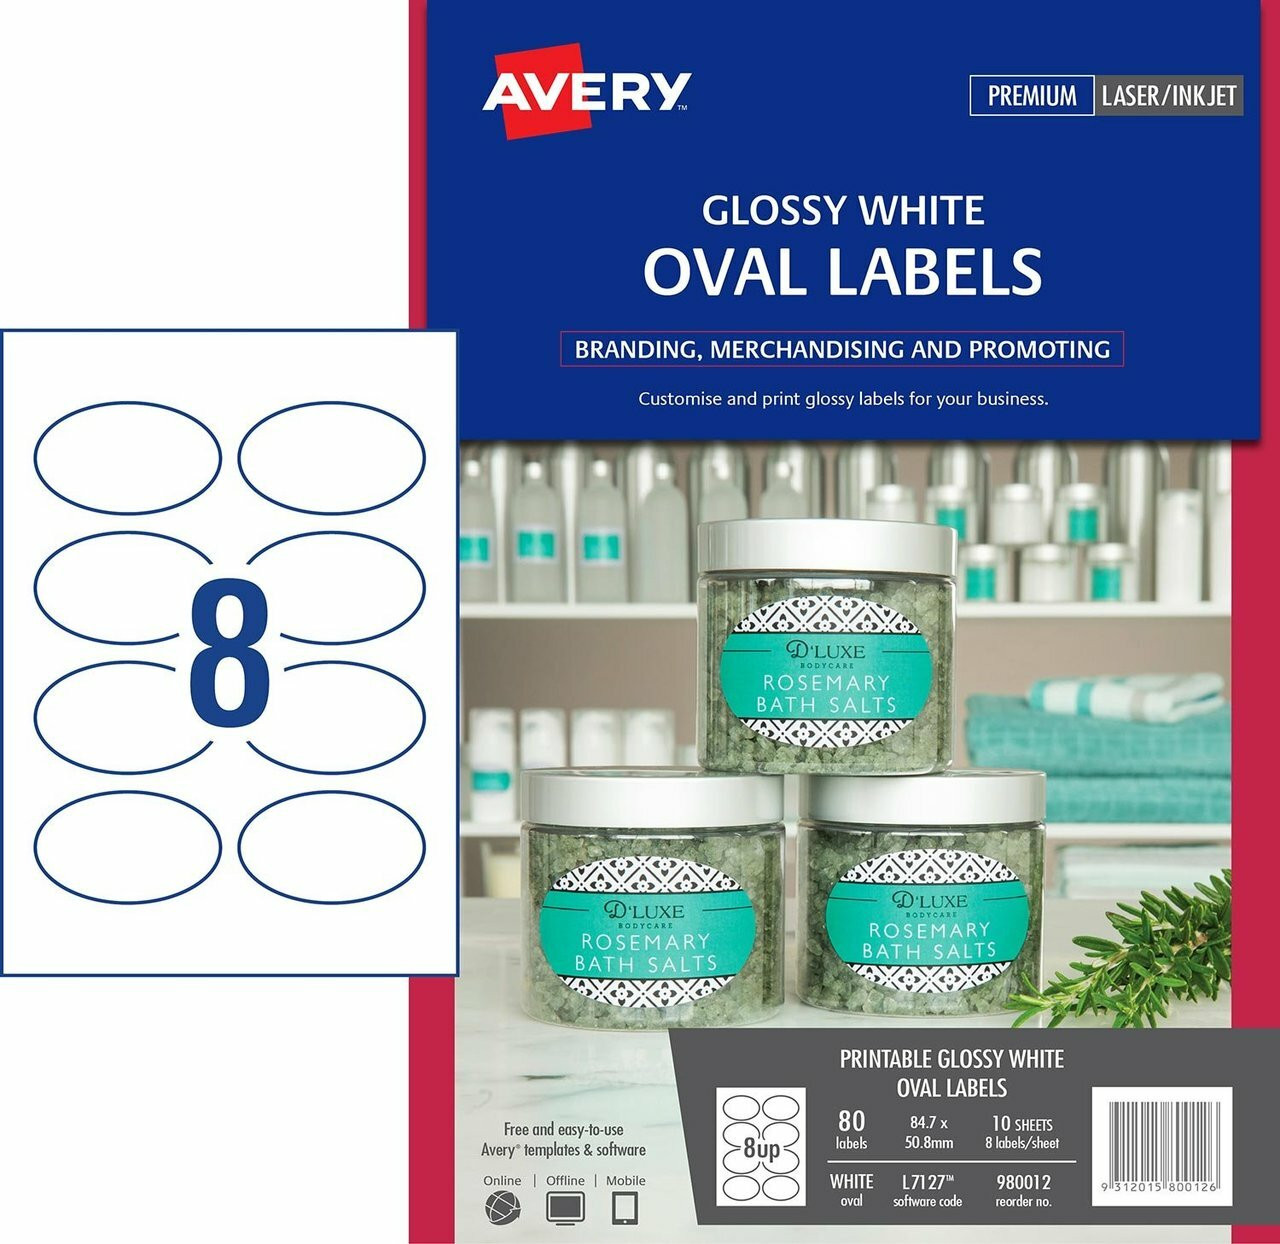 12c4d5bcc355 AVERY 980012 GLOSSY WHITE OVAL PRODUCT LABELS - L7127 - 80/PACK - 84.7 X  50.8 MM |8UP